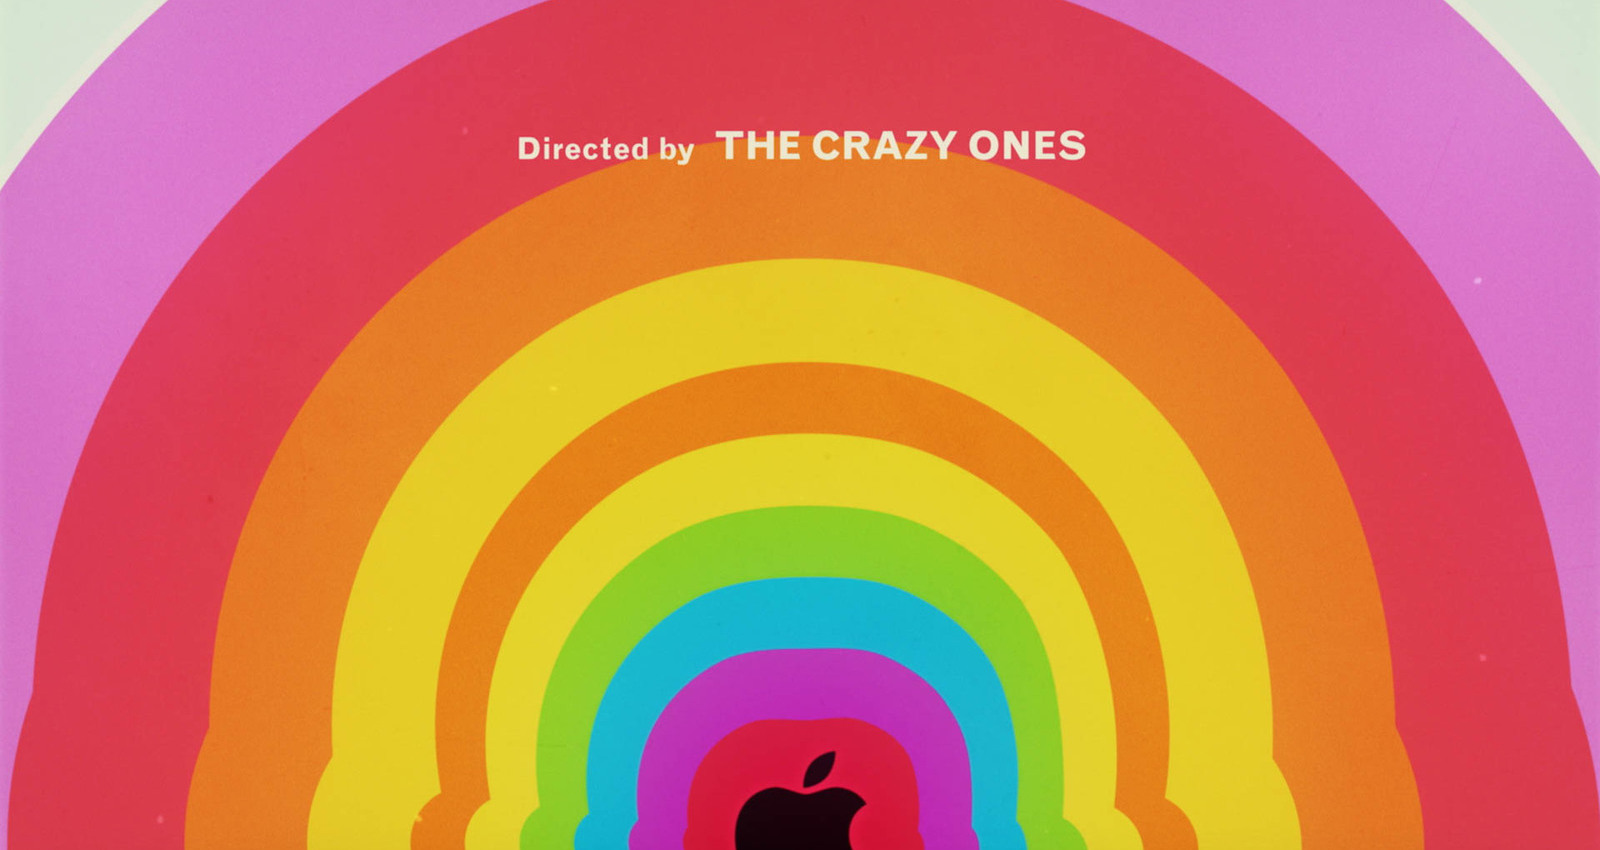 Opening Film. Apple Event March 2019 launching Apple TV+